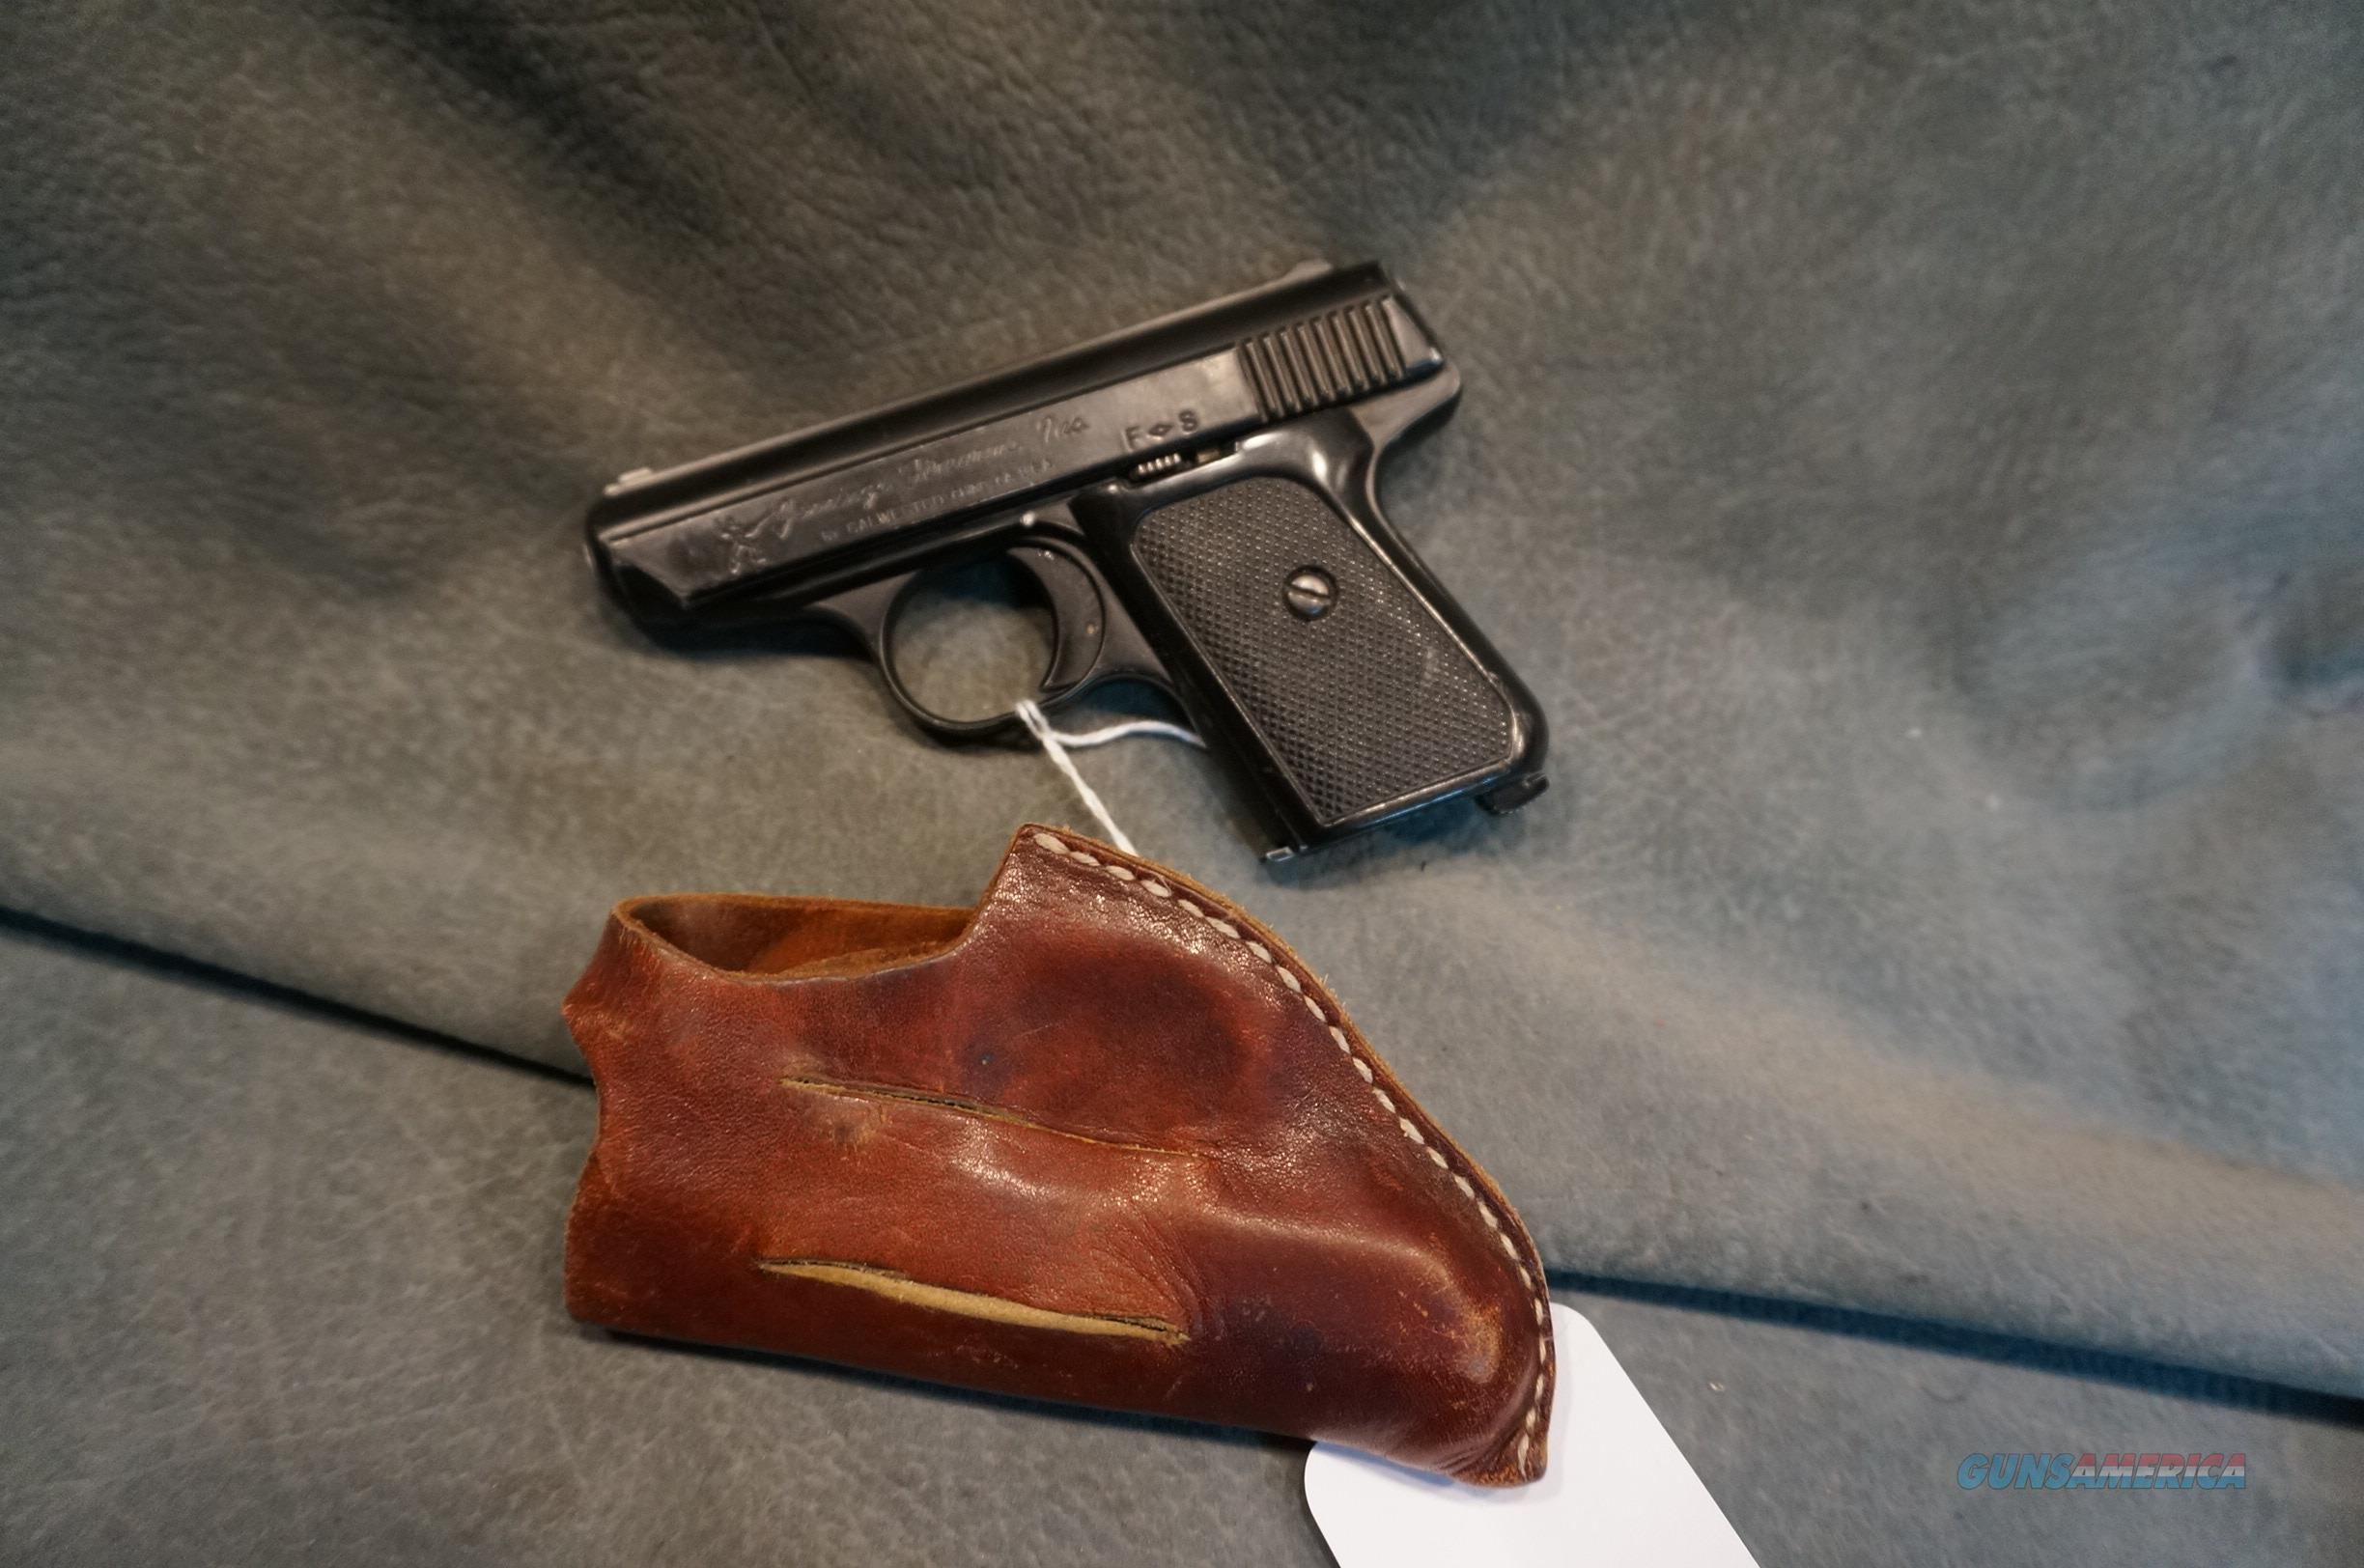 Jennings J-22 22LR with holster.  Guns > Pistols > Jennings Pistols